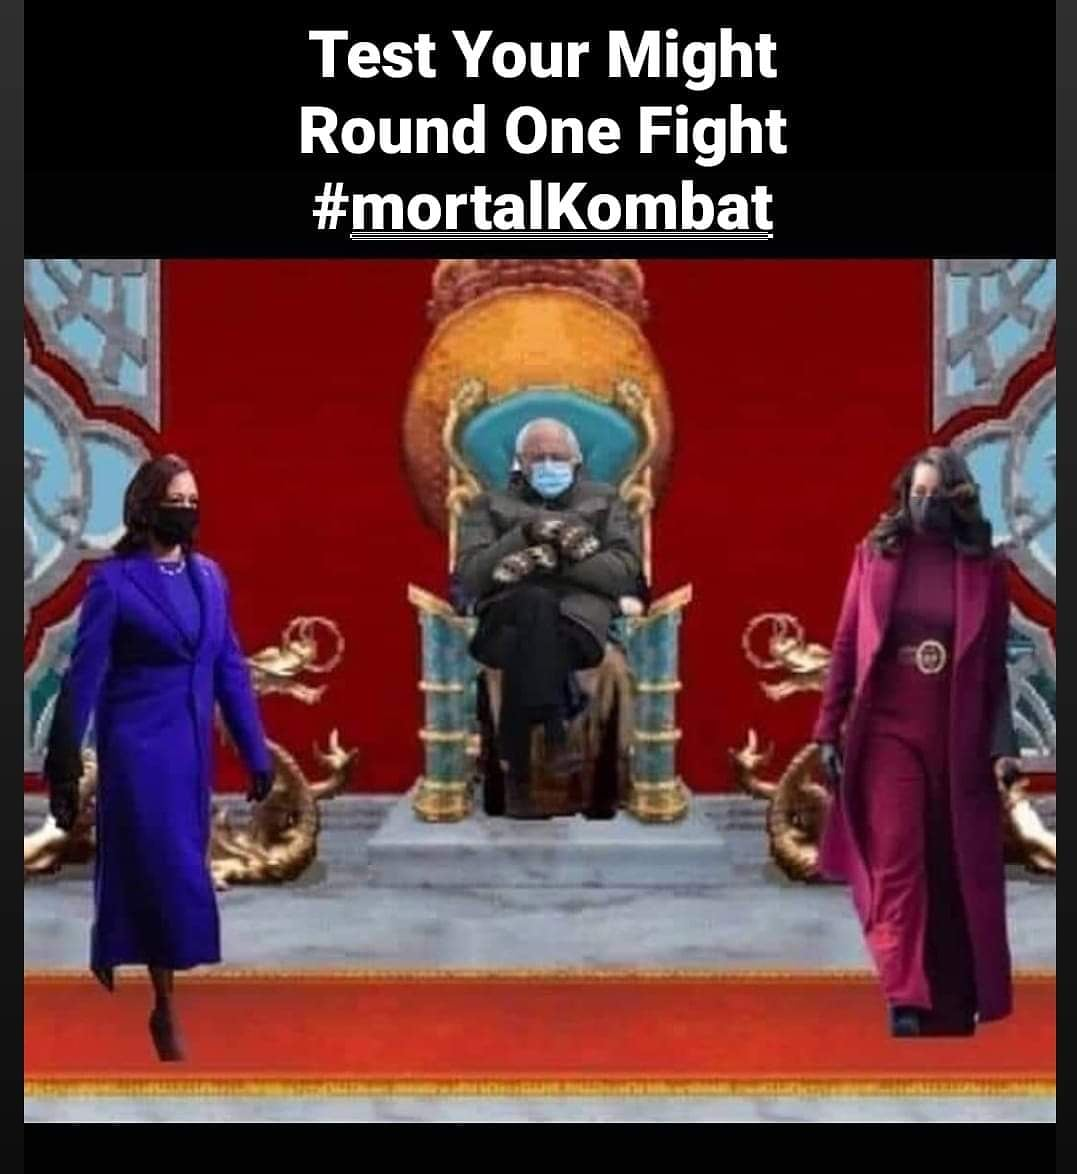 Who's your money on? No politics, just laughs, thanks to Femme Gaming over on Facebook for the meme! Go check them out! Photo credit 📷:  #gamestressevents #mortalkombat #chooseyourfighter #girlpower